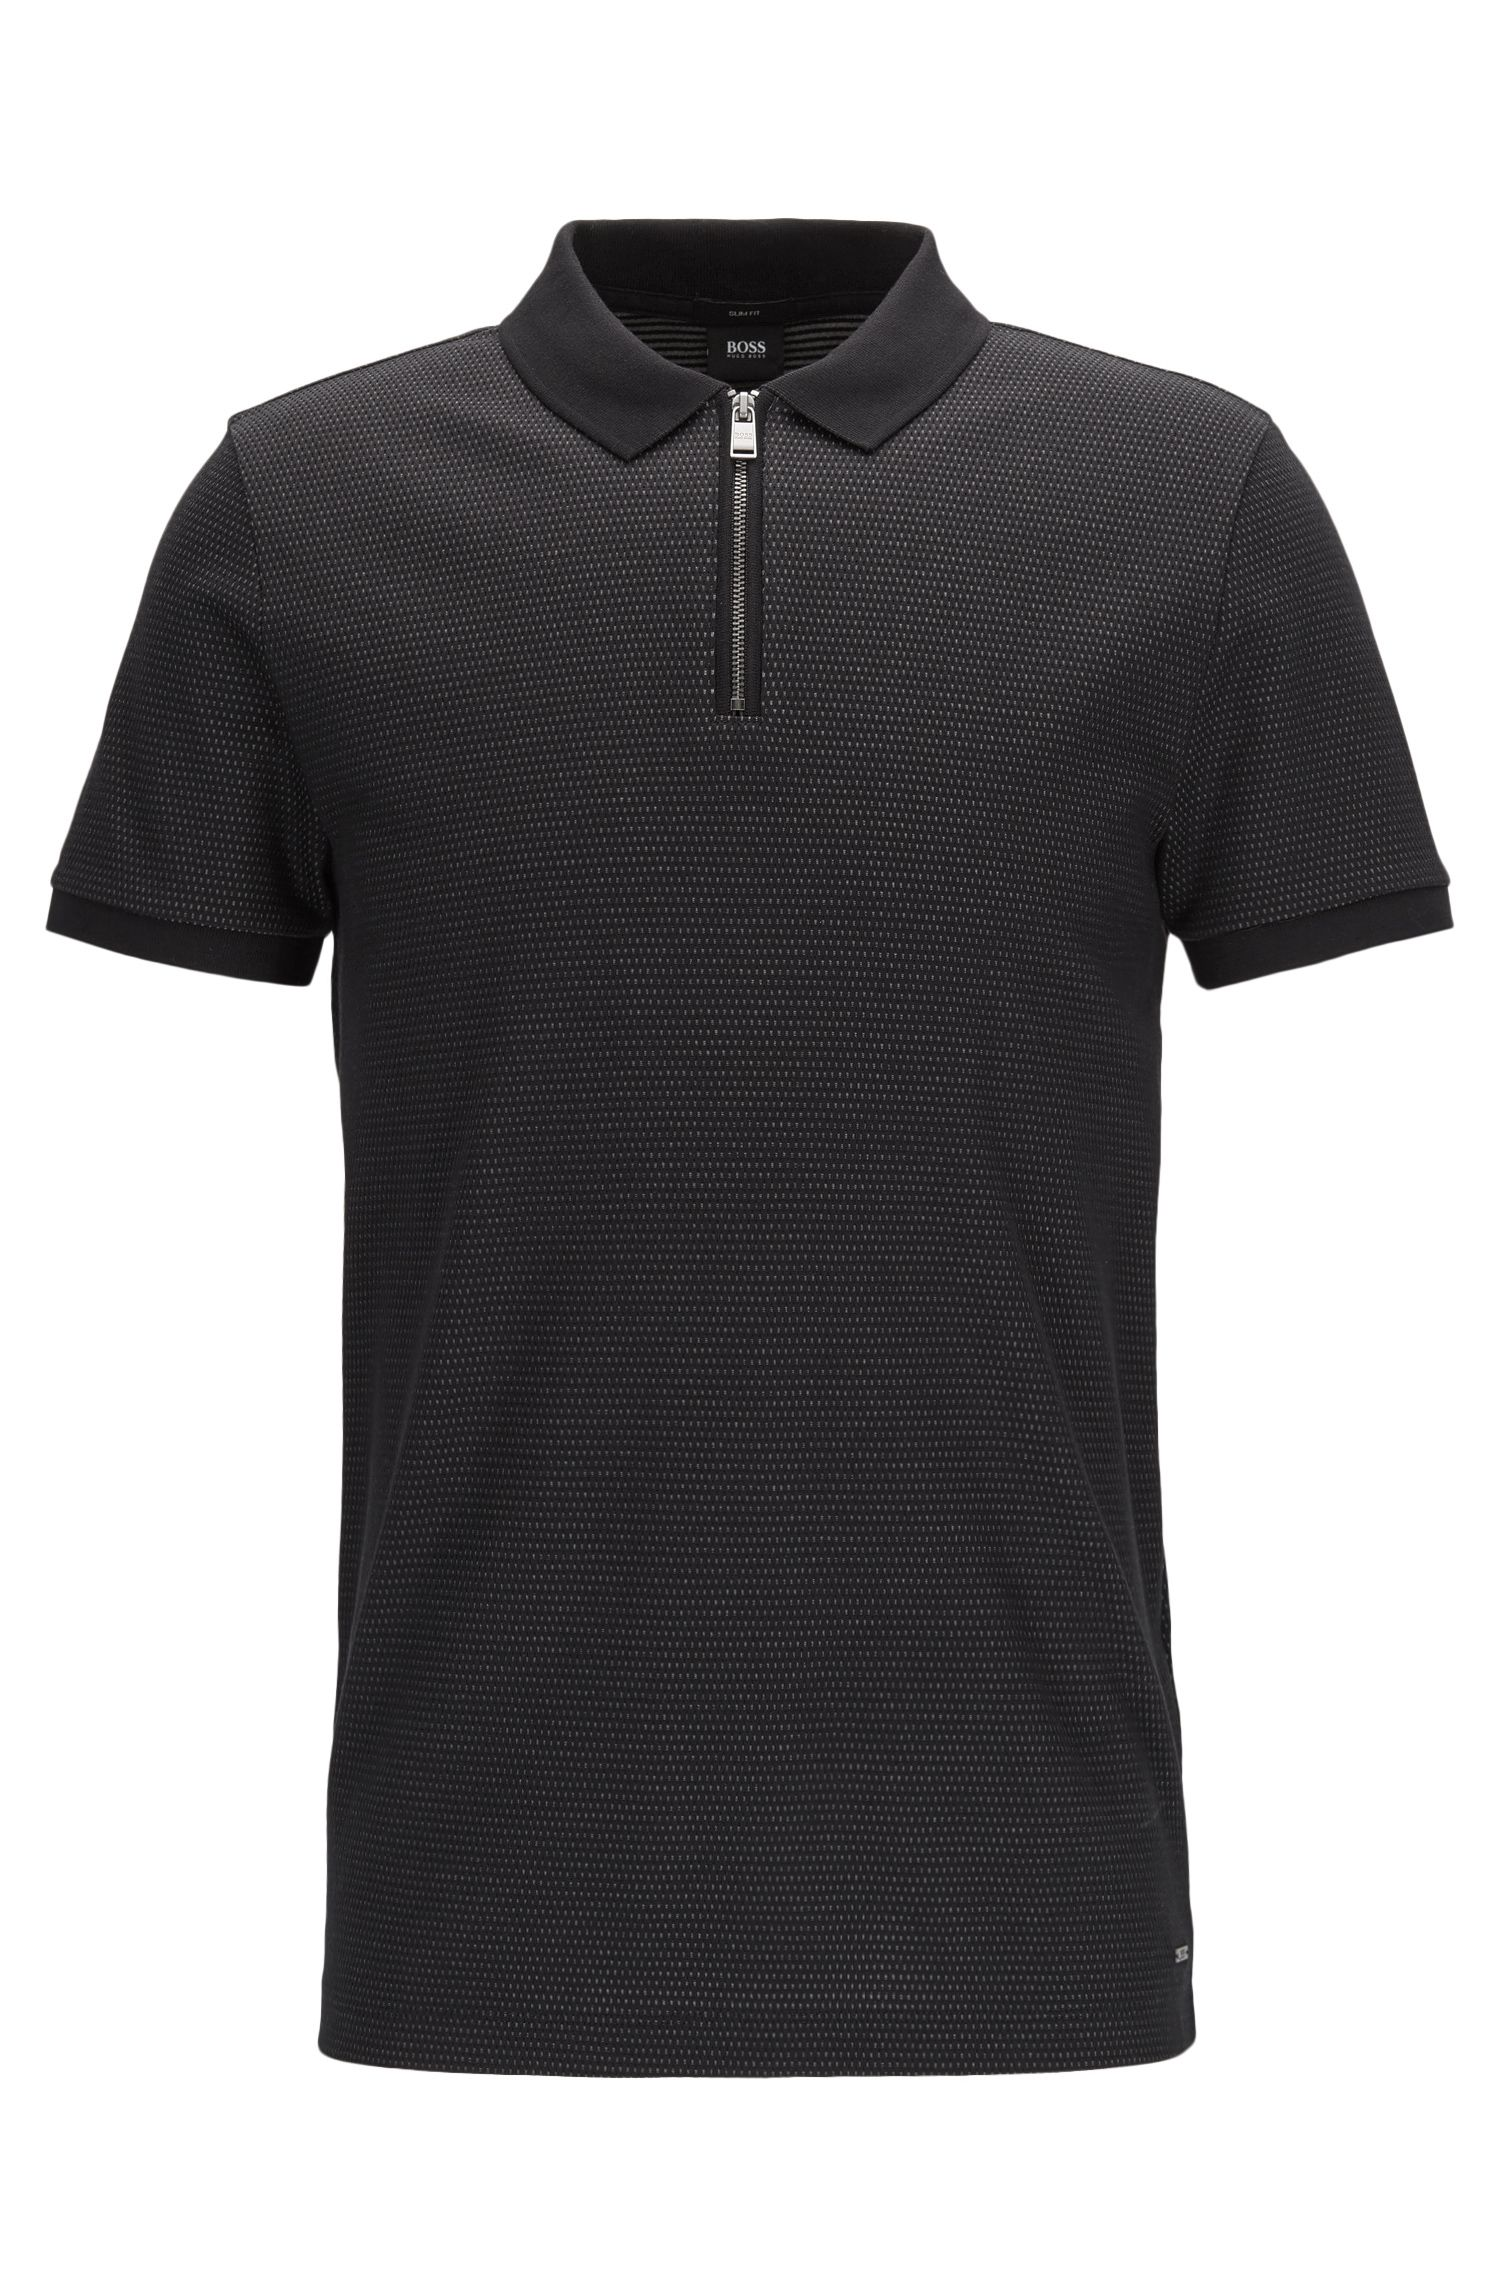 Jacquard Mercerized Cotton Polo Shirt, Slim Fit | Polston